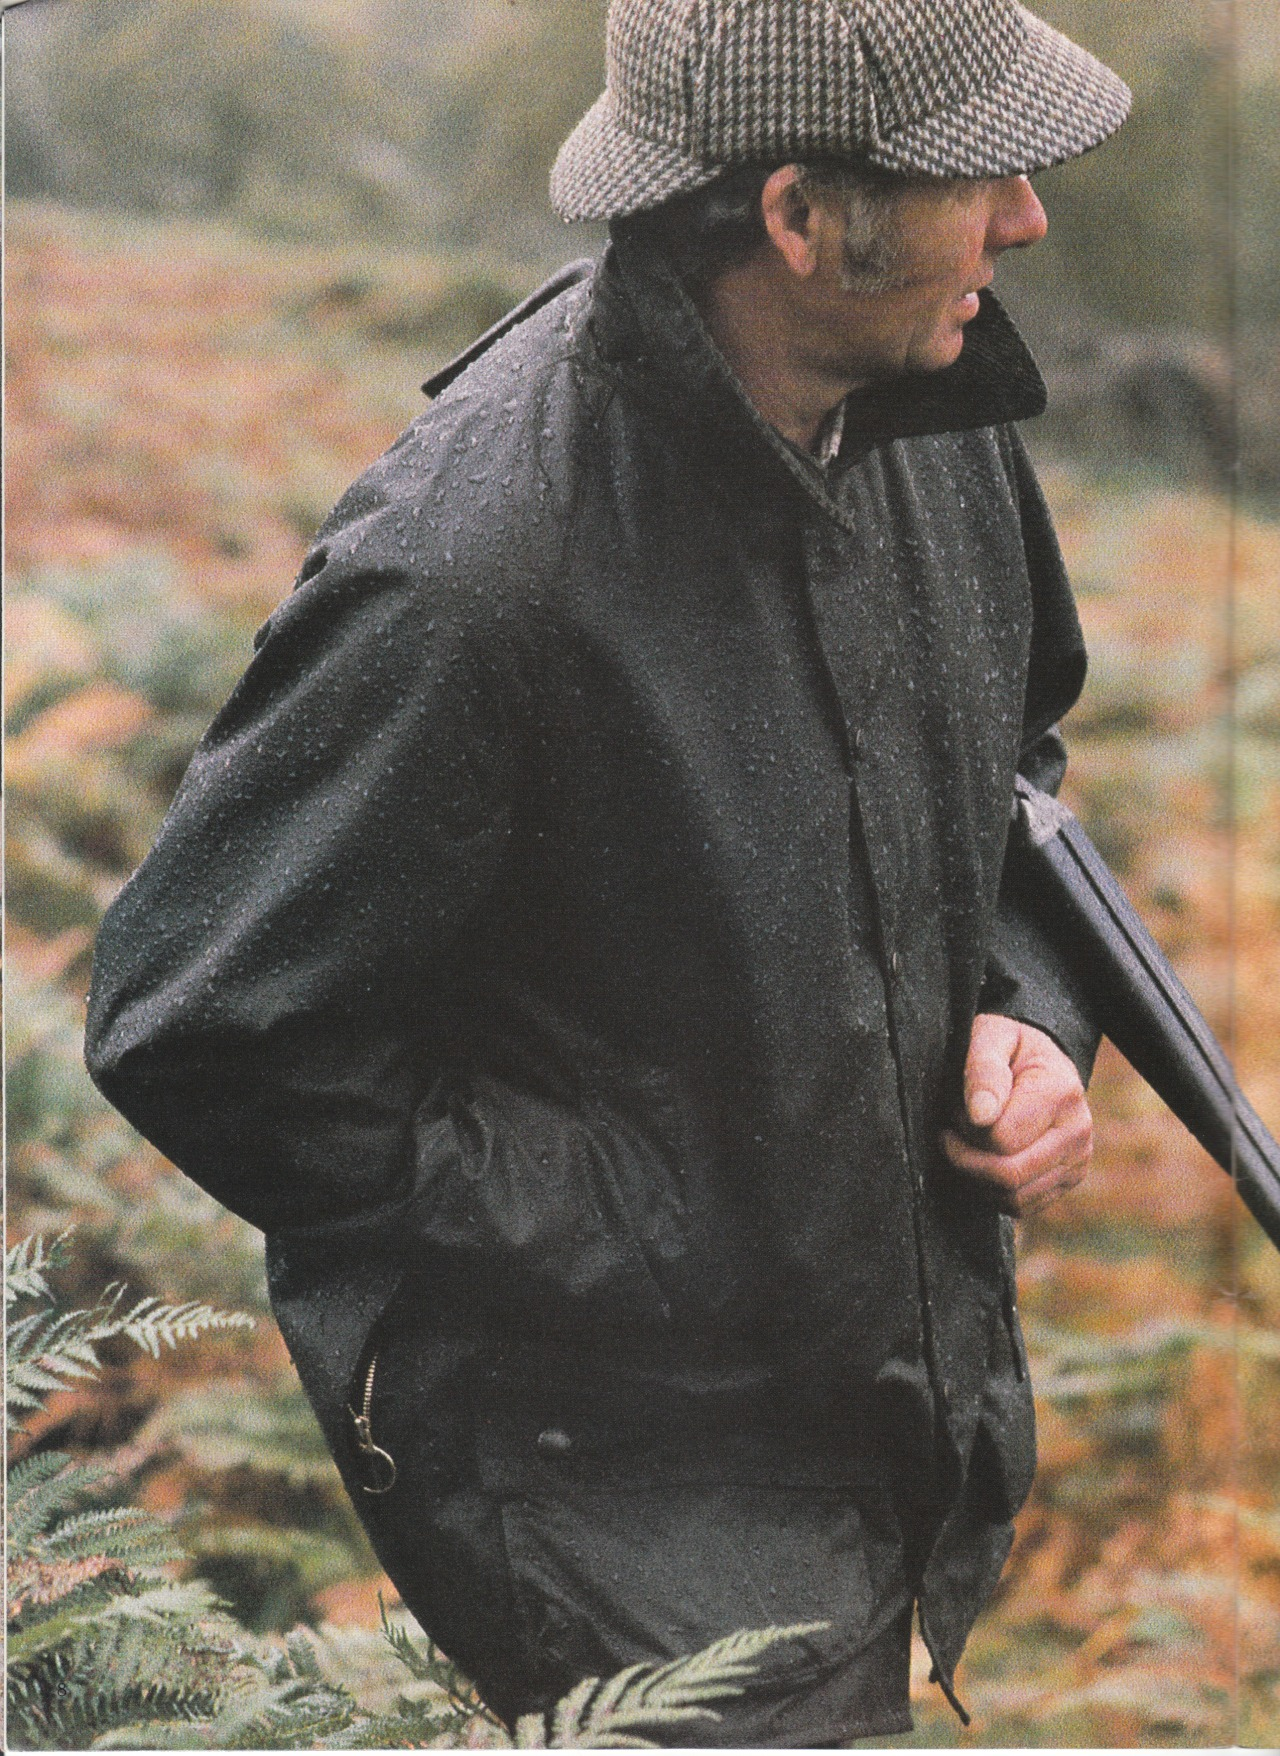 Barbour 1987 catalog.  A50 The Moorland Jacket.  My number one work jacket.